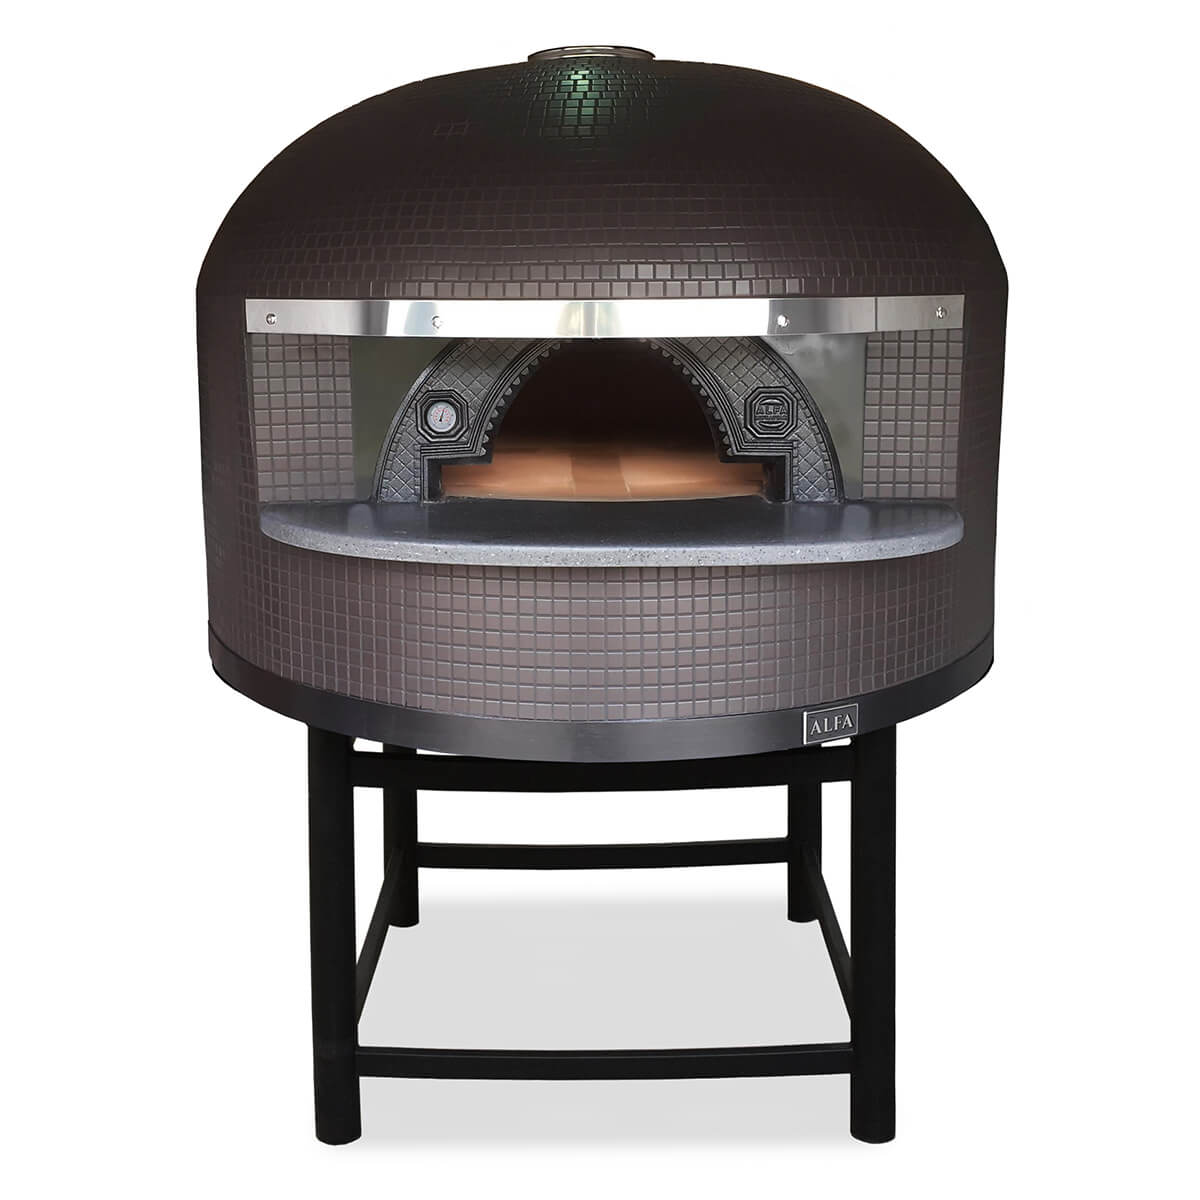 napoli-commercial-refractory-pizza-oven-brown